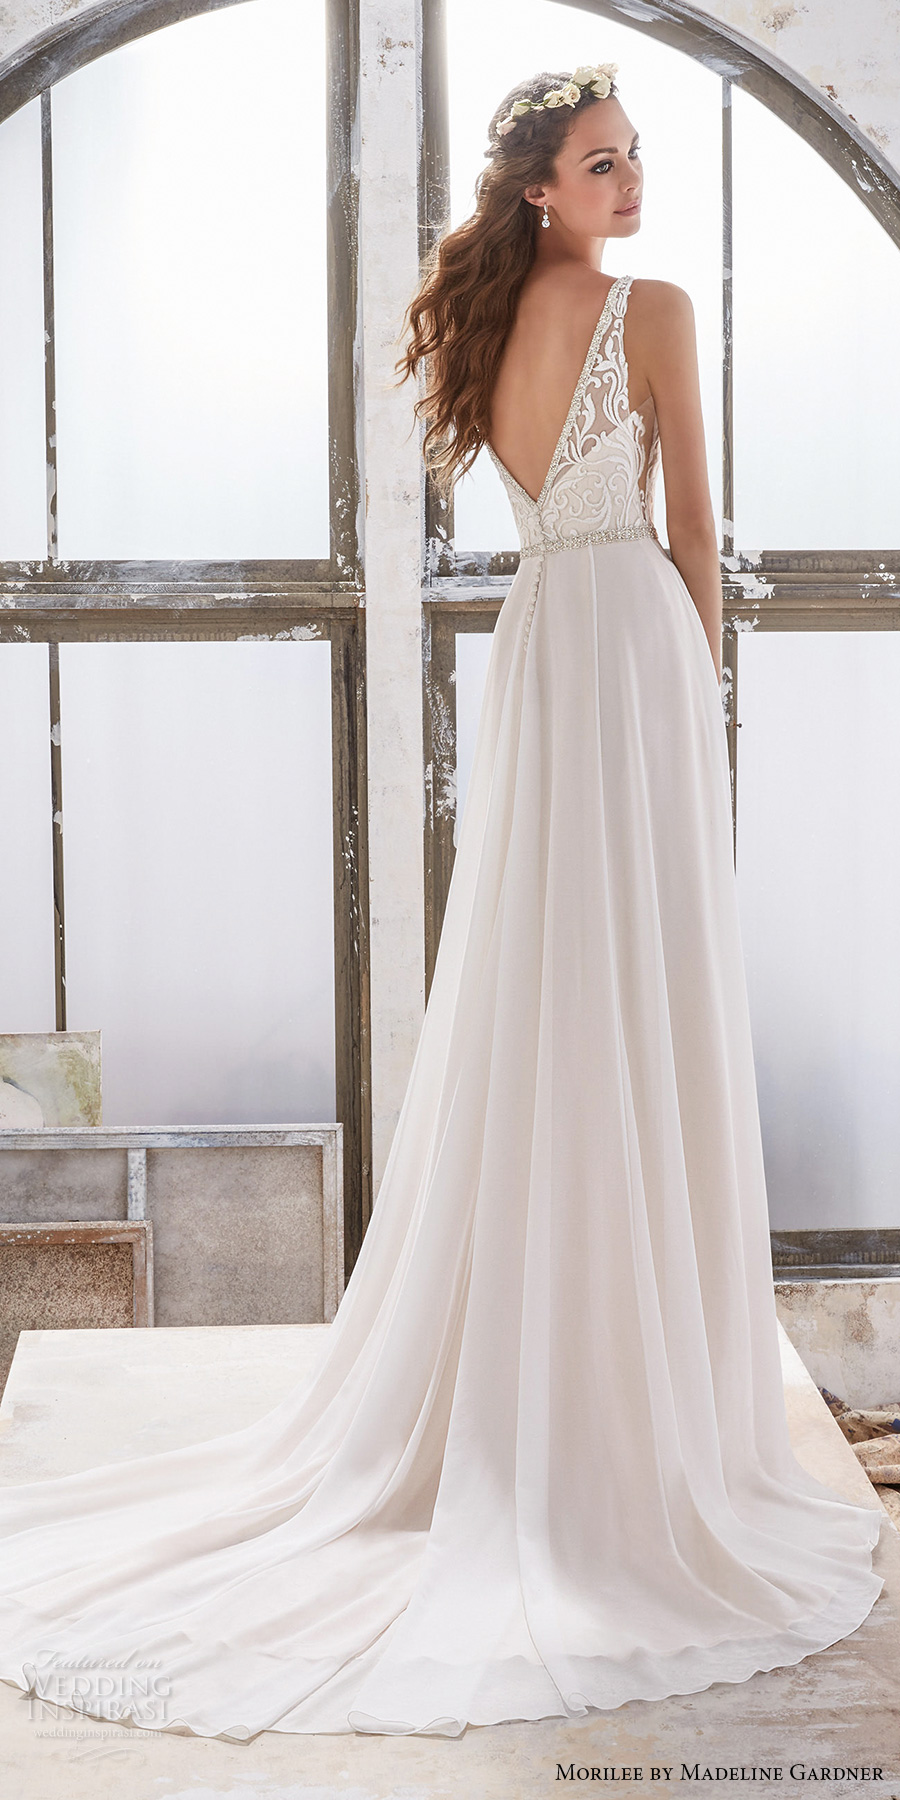 Morilee by madeline gardner spring 2017 wedding dresses for Website for wedding dresses